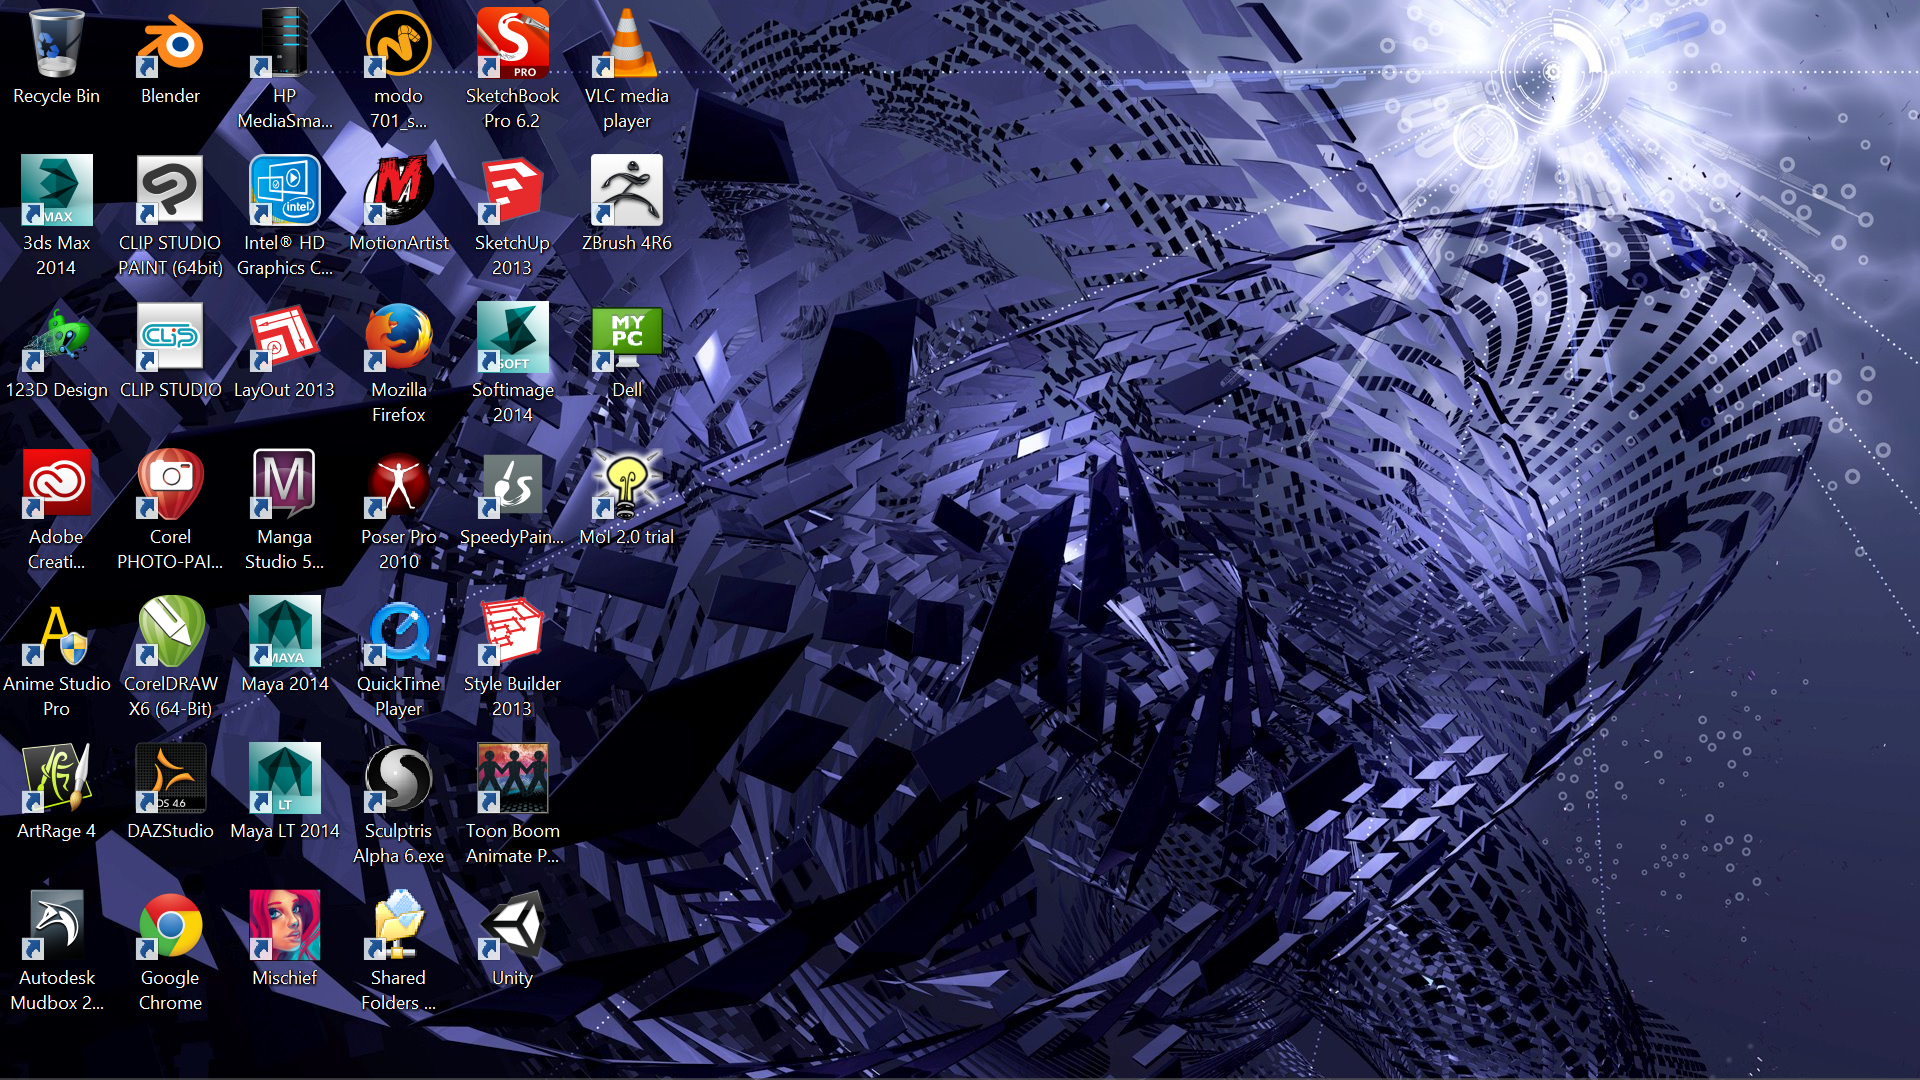 The Windows 8.1 desktop displaying a background from one of the new themes available for download.